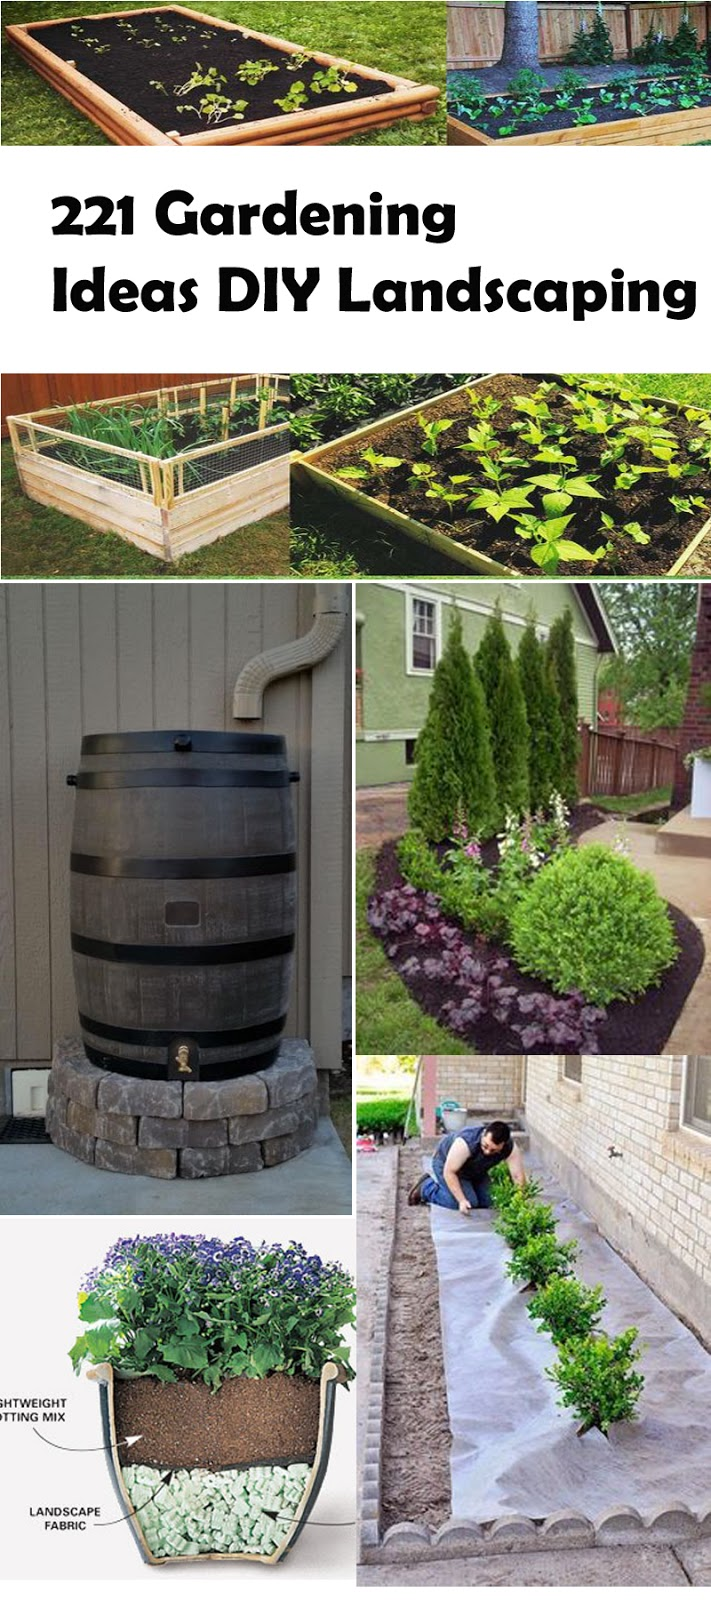 221 gardening ideas diy landscaping a blog on garden - Garden ideas diy ...